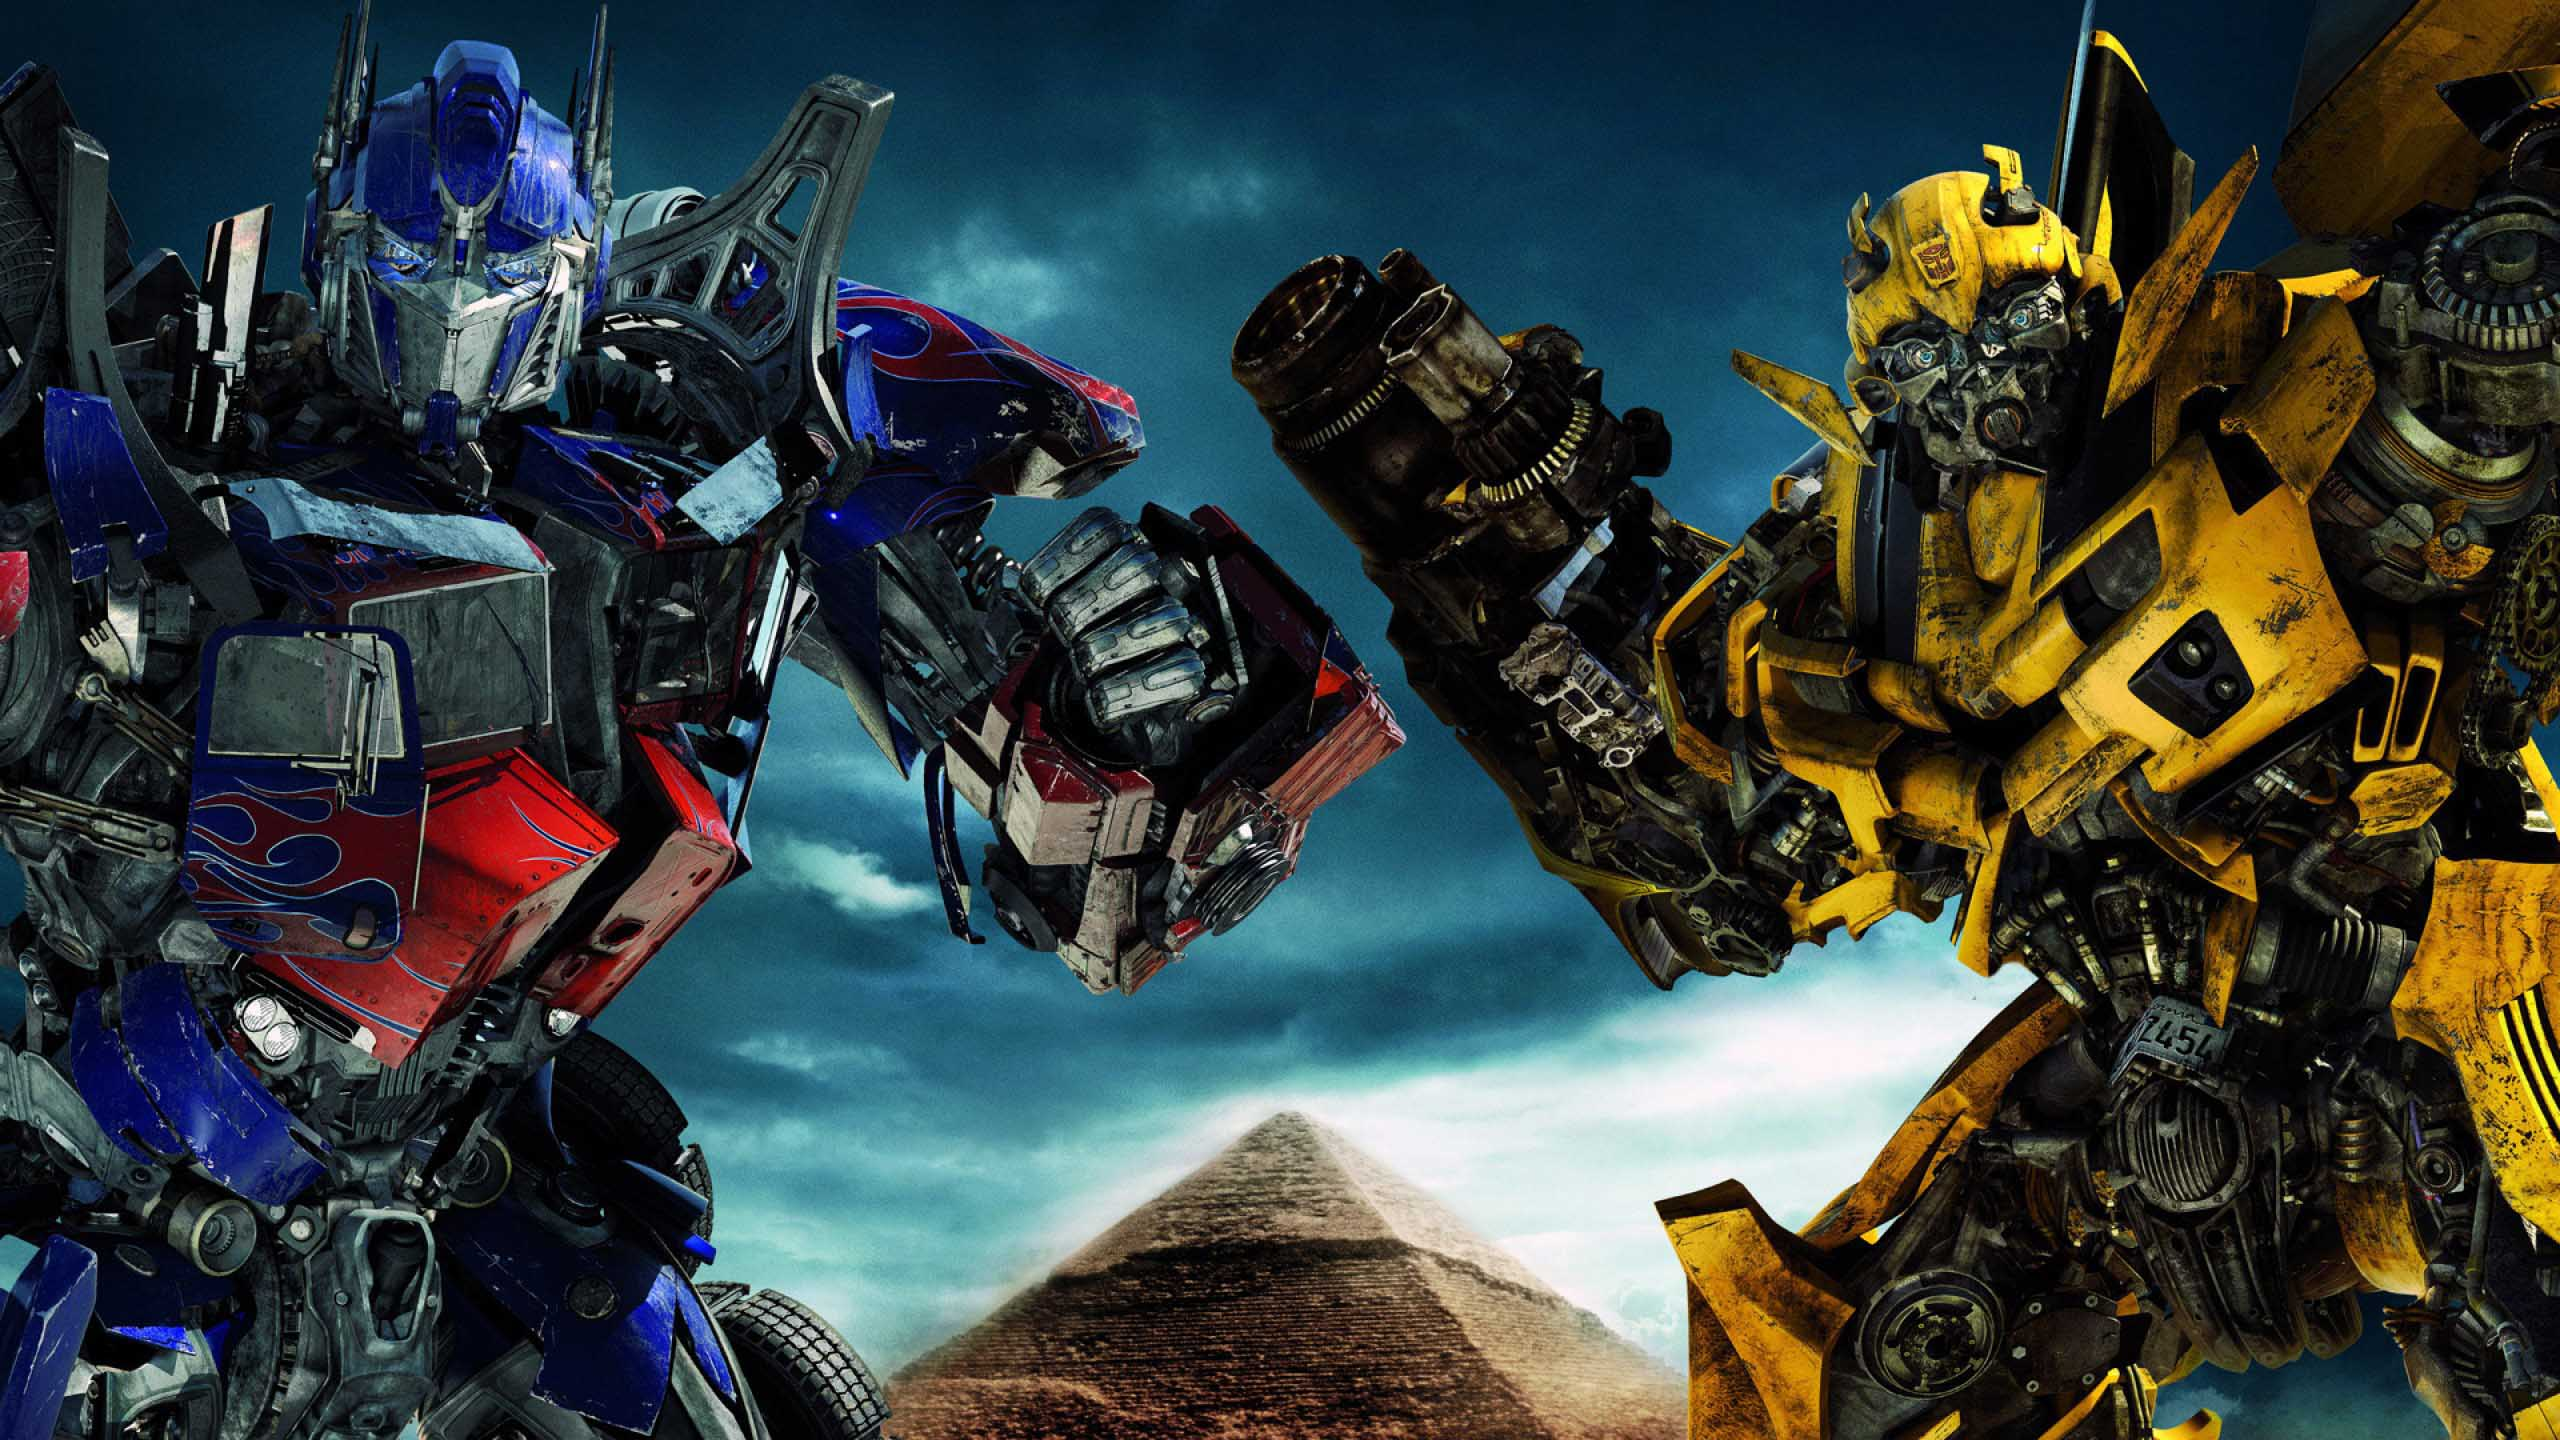 transformers-4-optimus-prime-wallpaper-wide | wallpaper.wiki